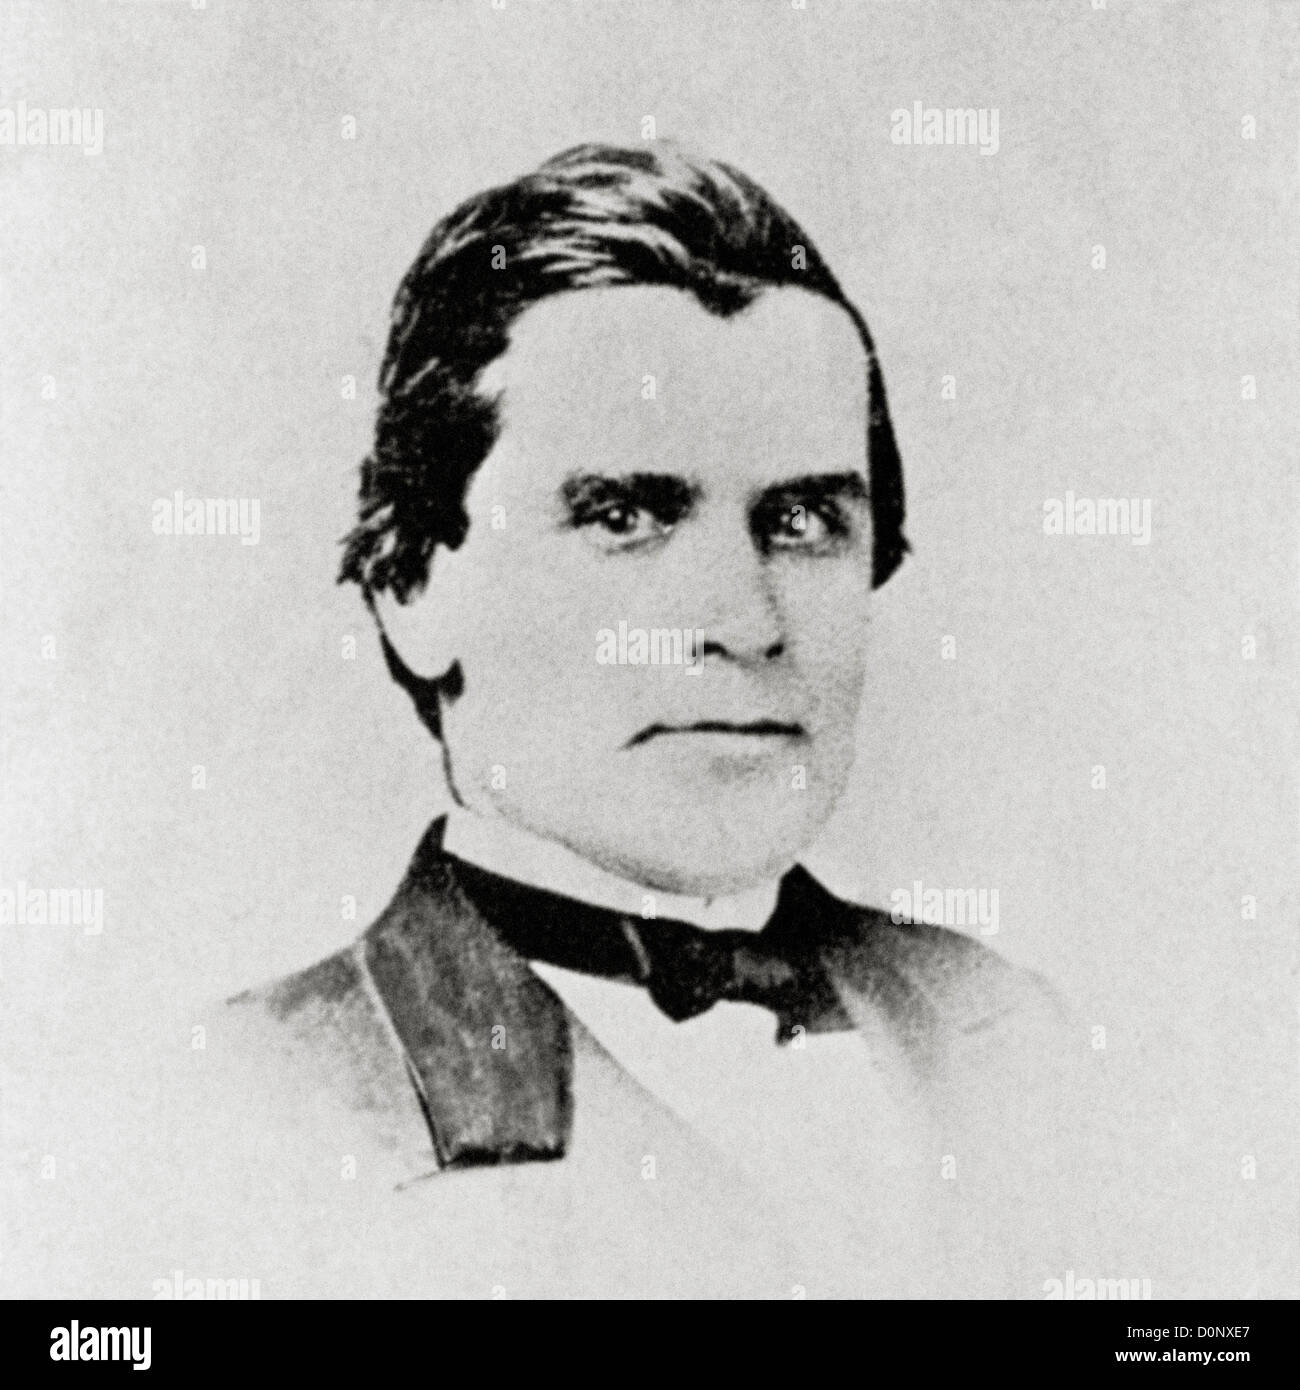 William McKinley at Nineteen Years Old - Stock Image